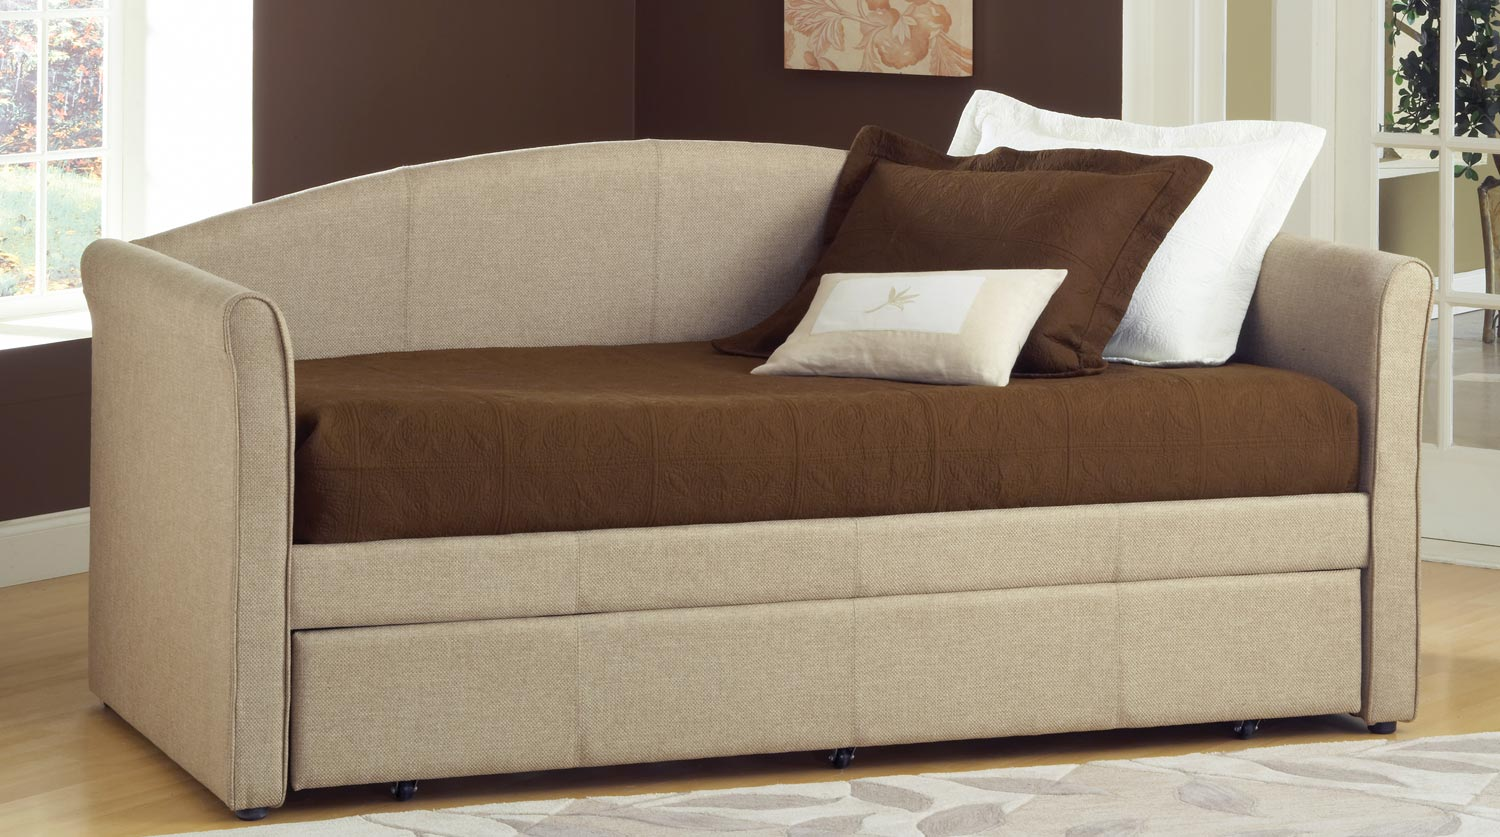 Hillsdale daybed trundle : Hillsdale siesta daybed with trundle dbt